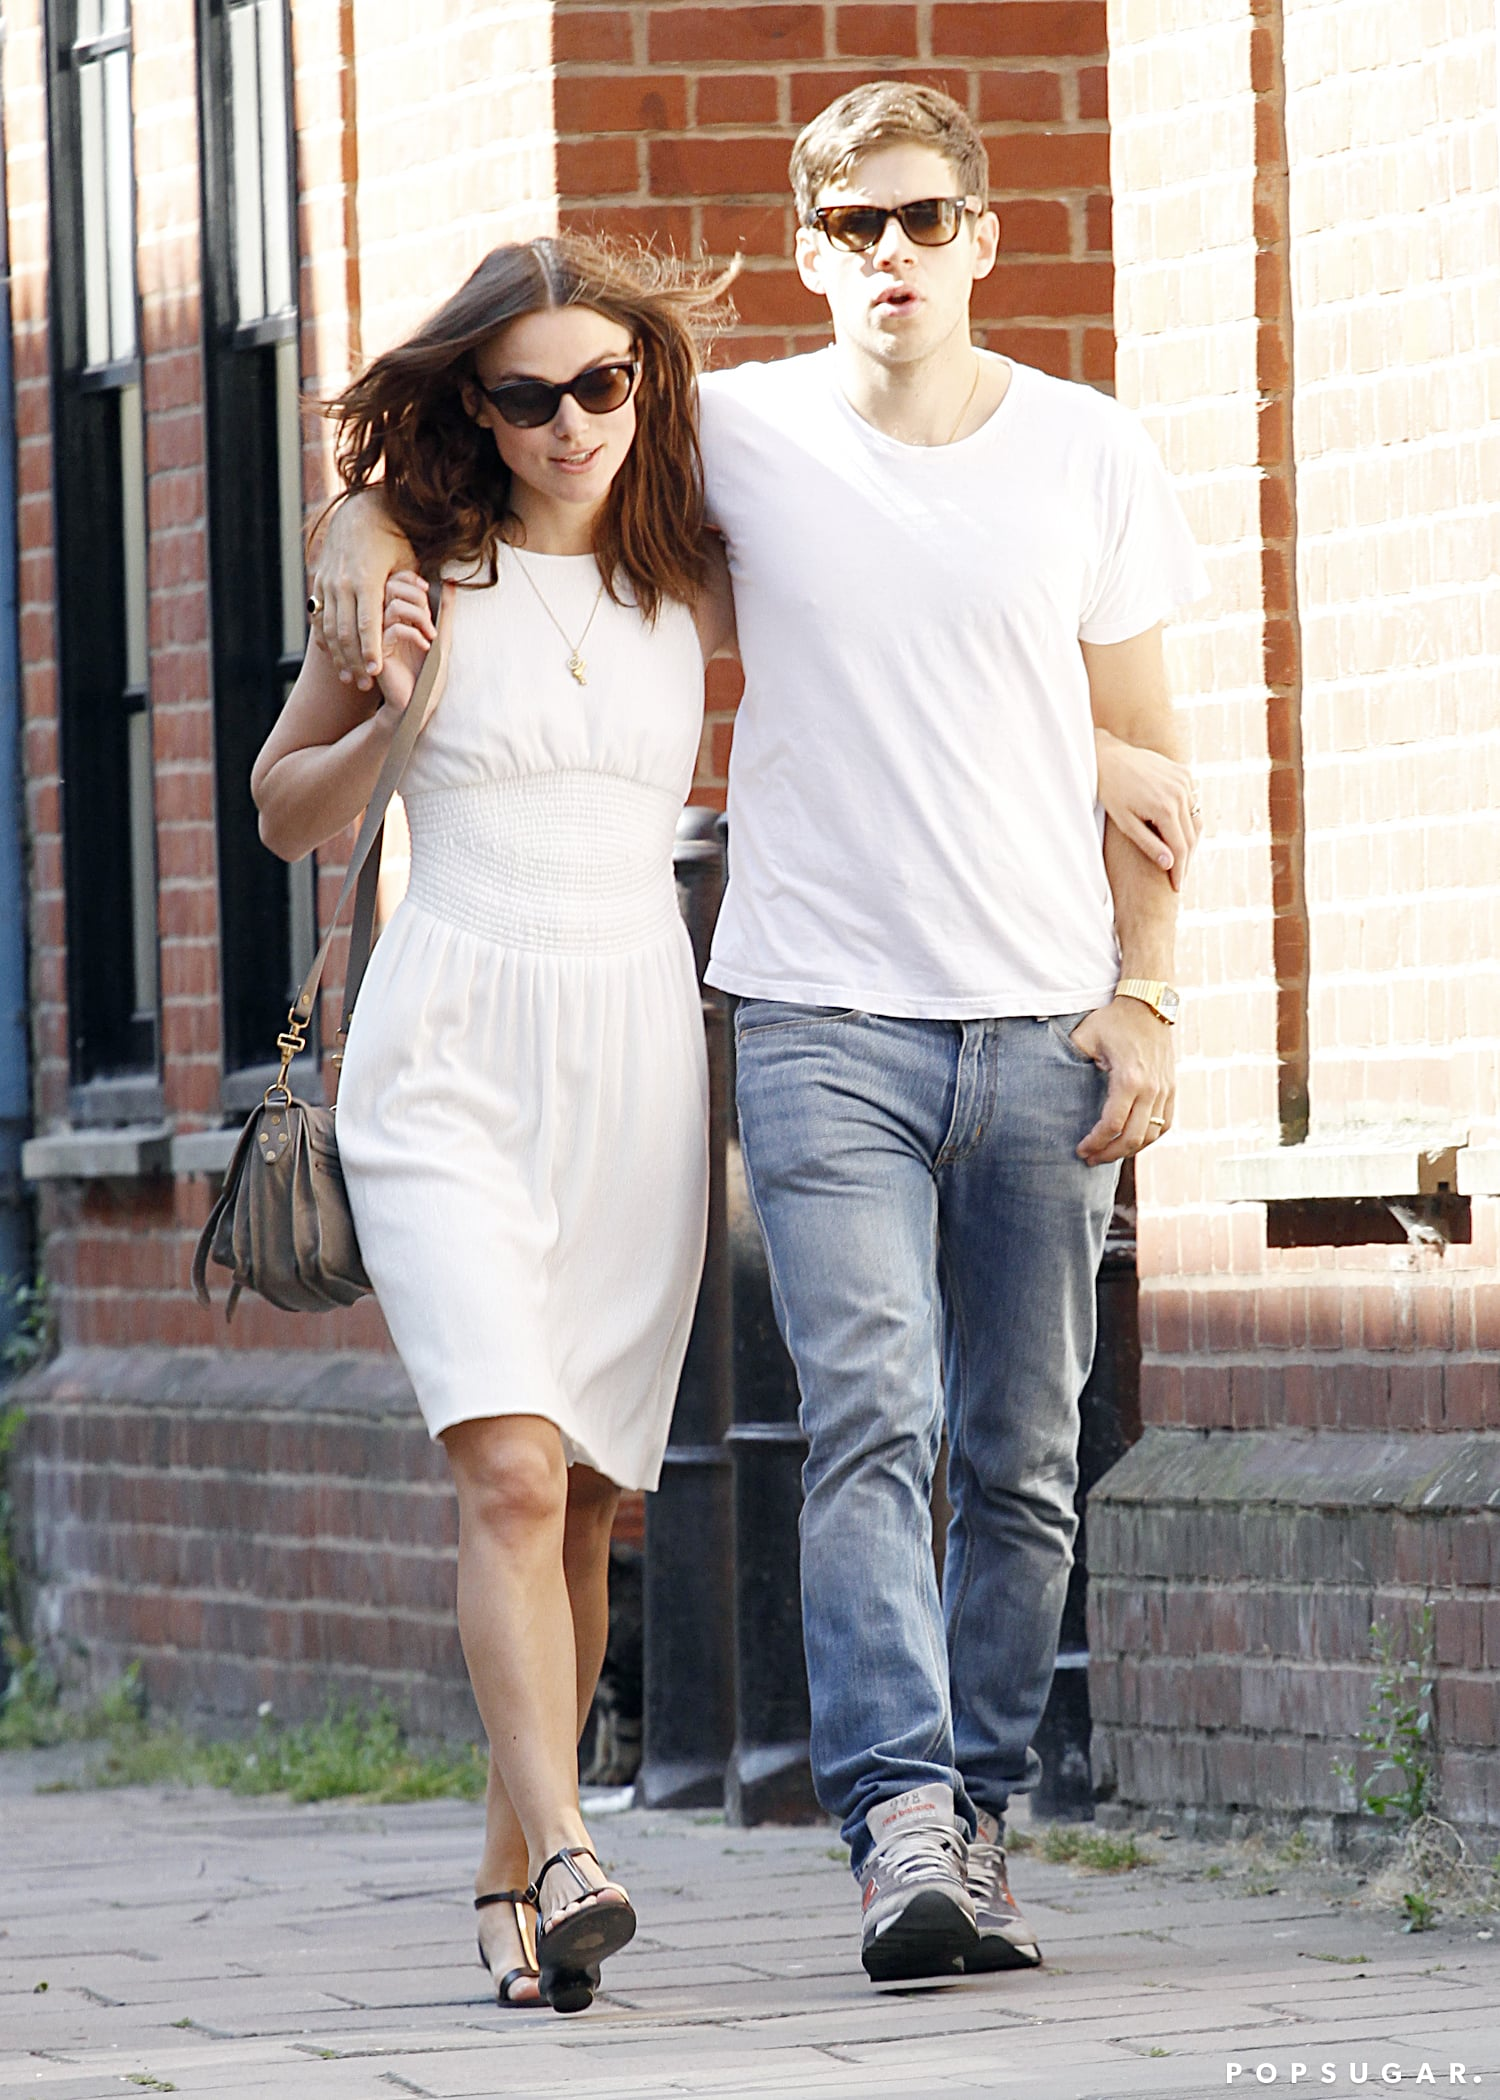 Keira Knightley and James Righton took a walk in London.